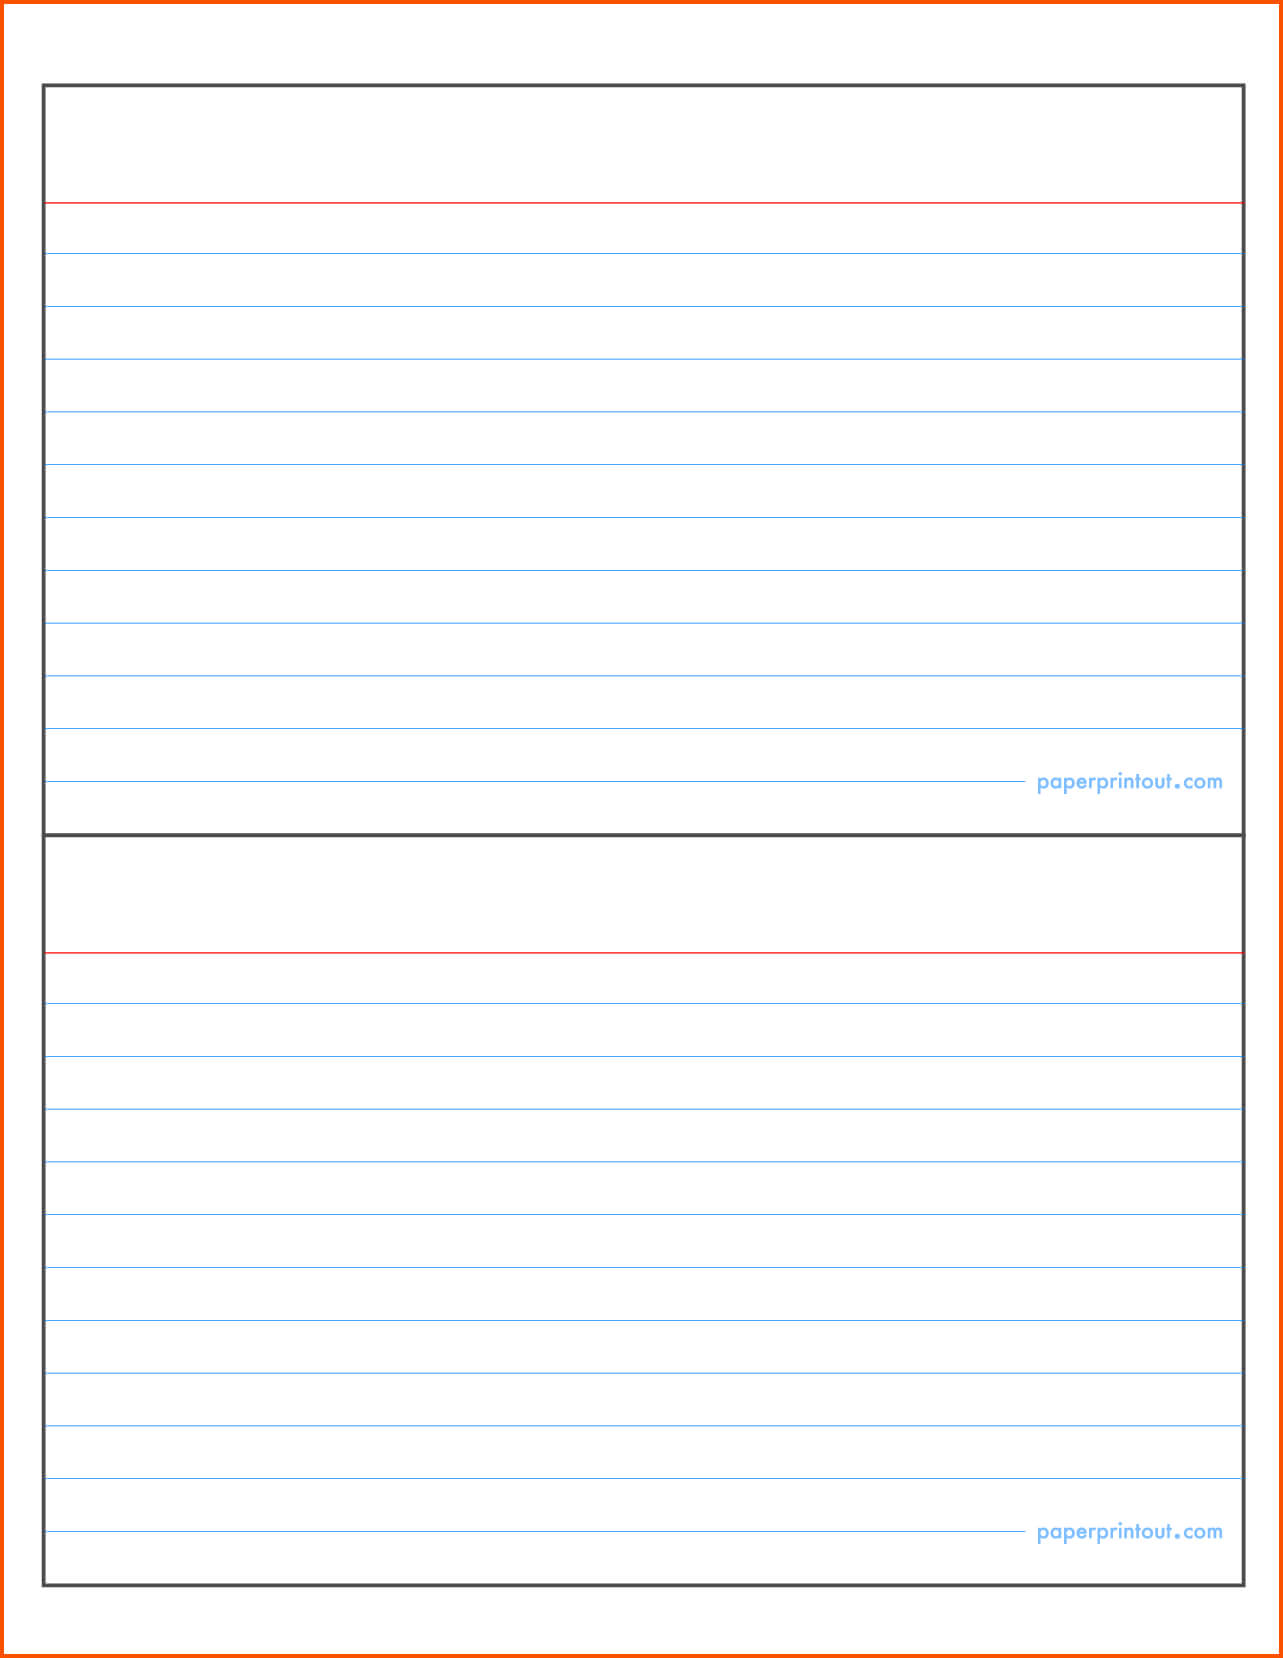 002 Template Ideas Note Card Word Index Cards 127998 With Regard To 3X5 Note Card Template For Word